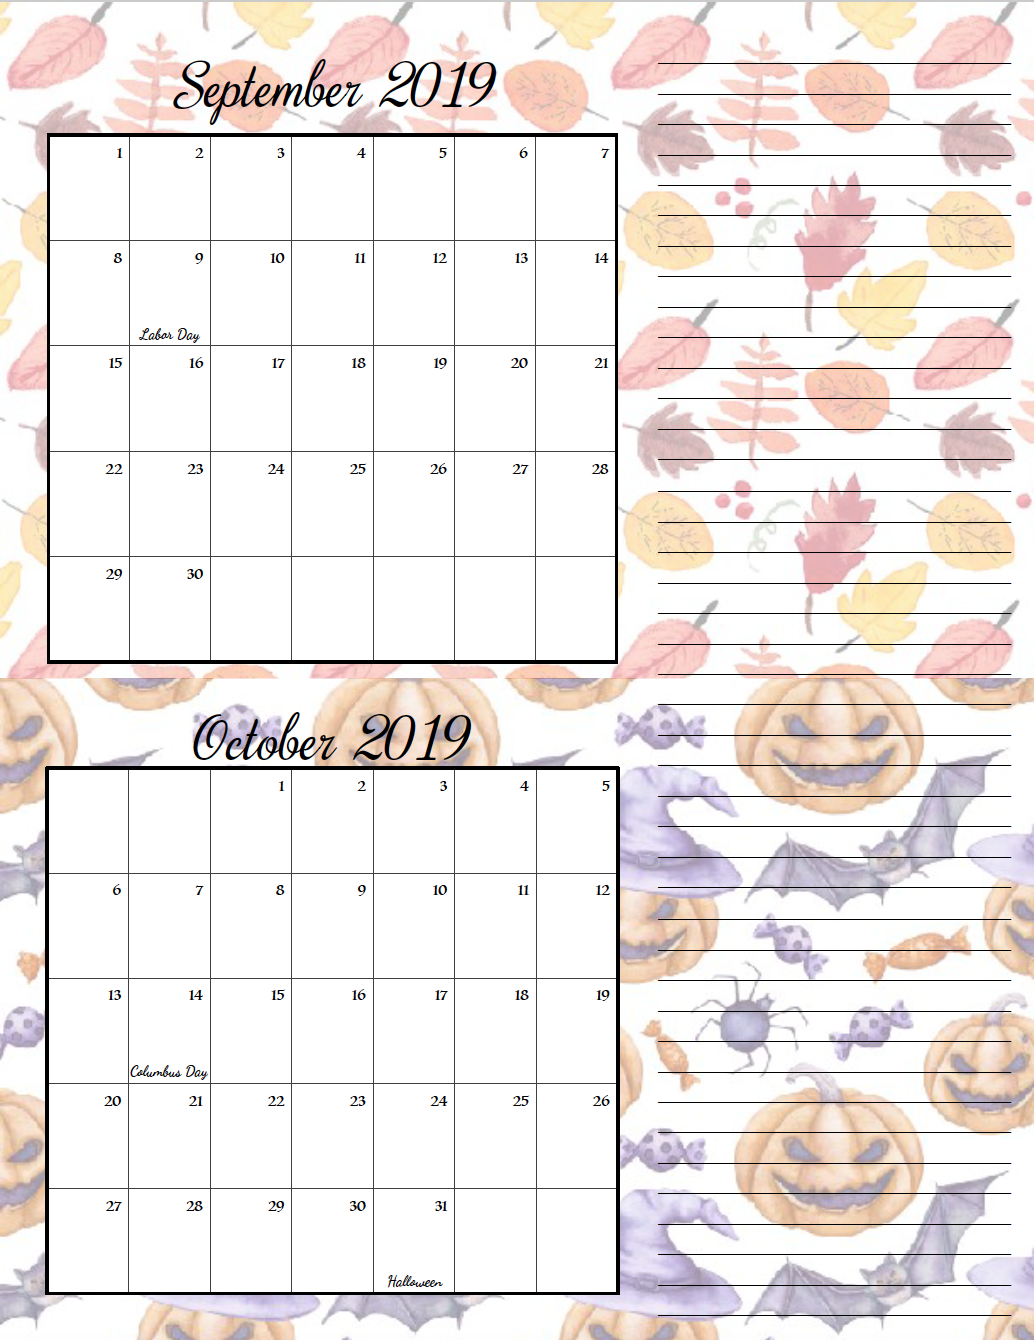 September/October. FREE Printable 2019 Bimonthly Calendars. Space for notes, holidays marked. 2 different designs! #free #freeprintable #printable #calendar #freecalendar #bimonthly #freeprintablecalendar